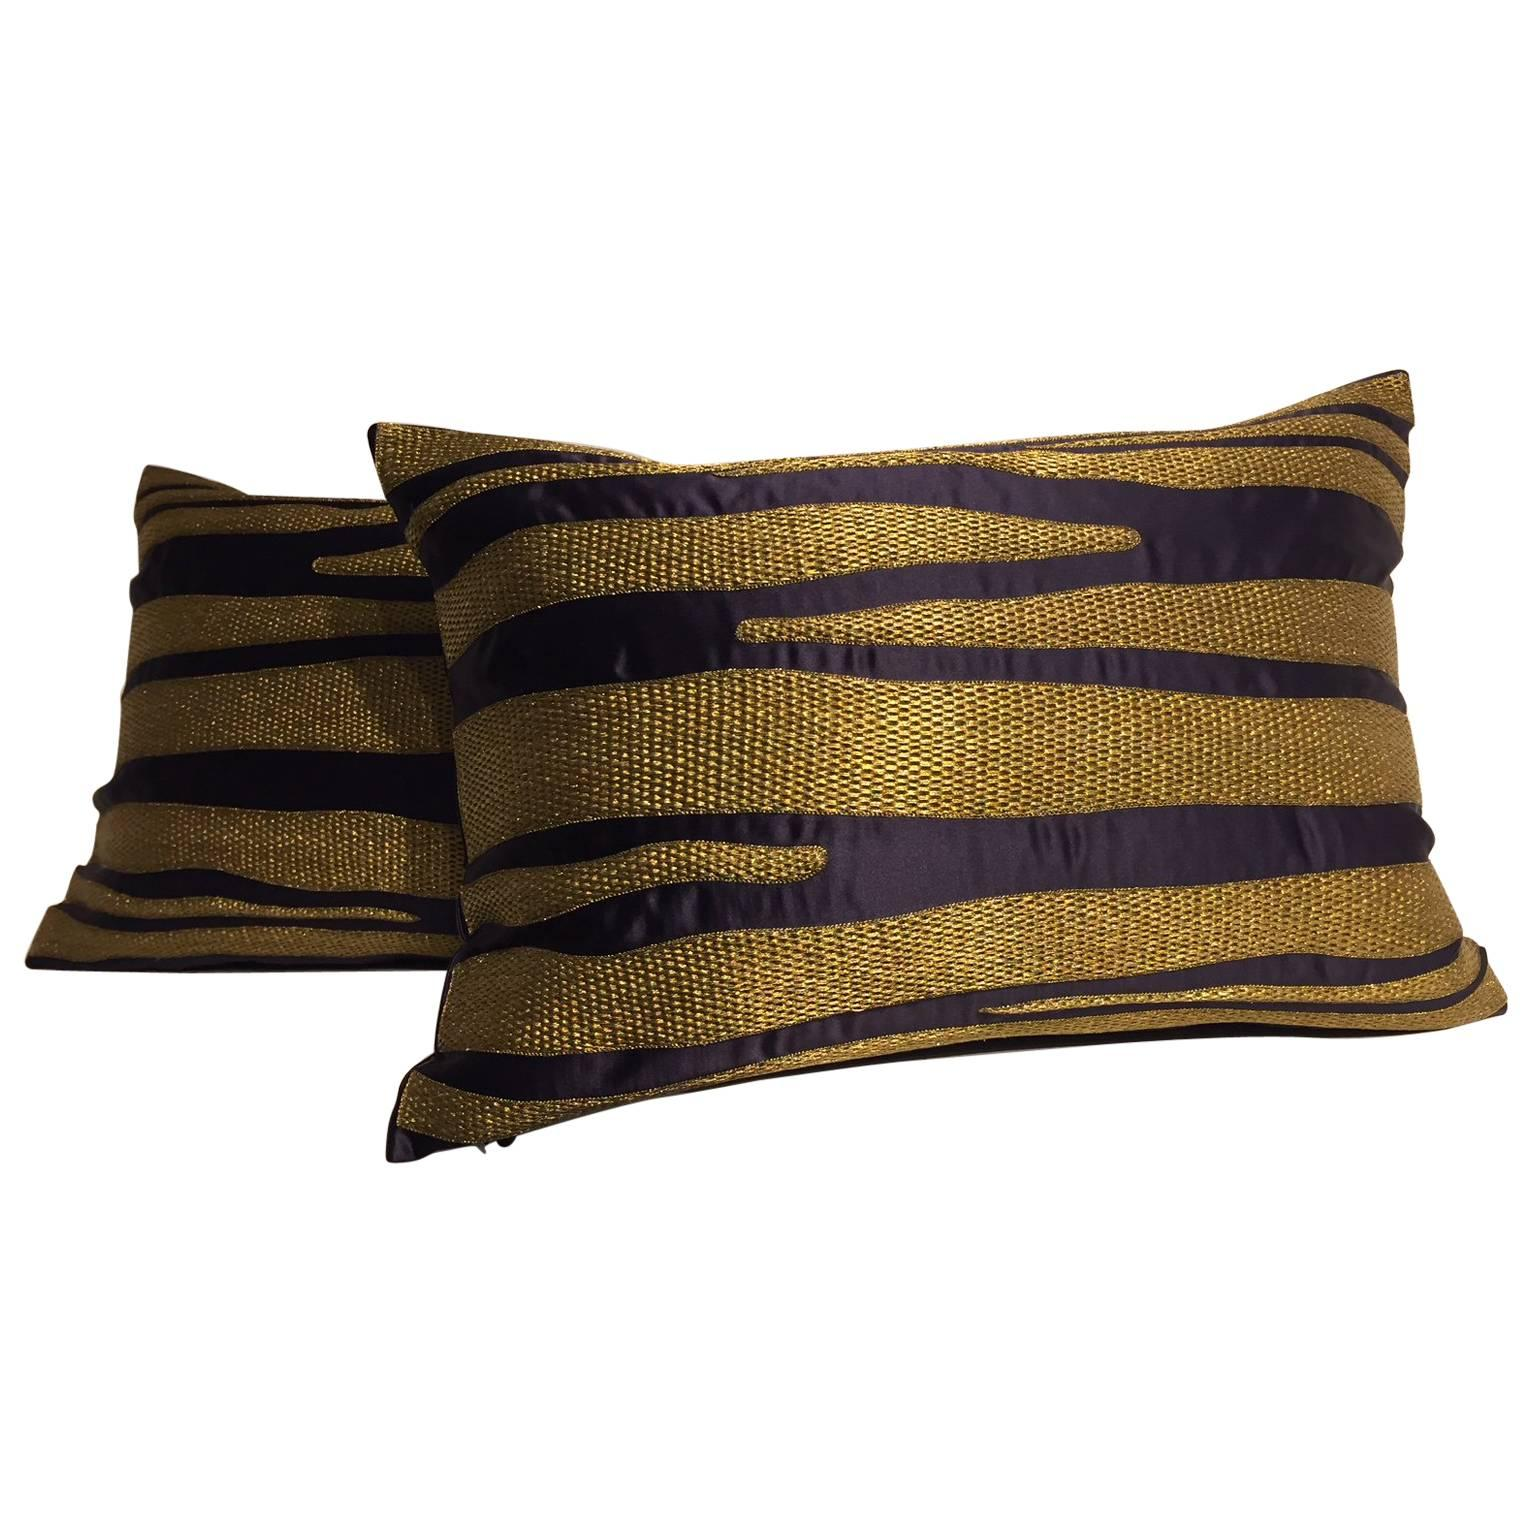 Cushions With Contemporary Hand Embroidery Gold Thread on Dark Blue Silk Satin